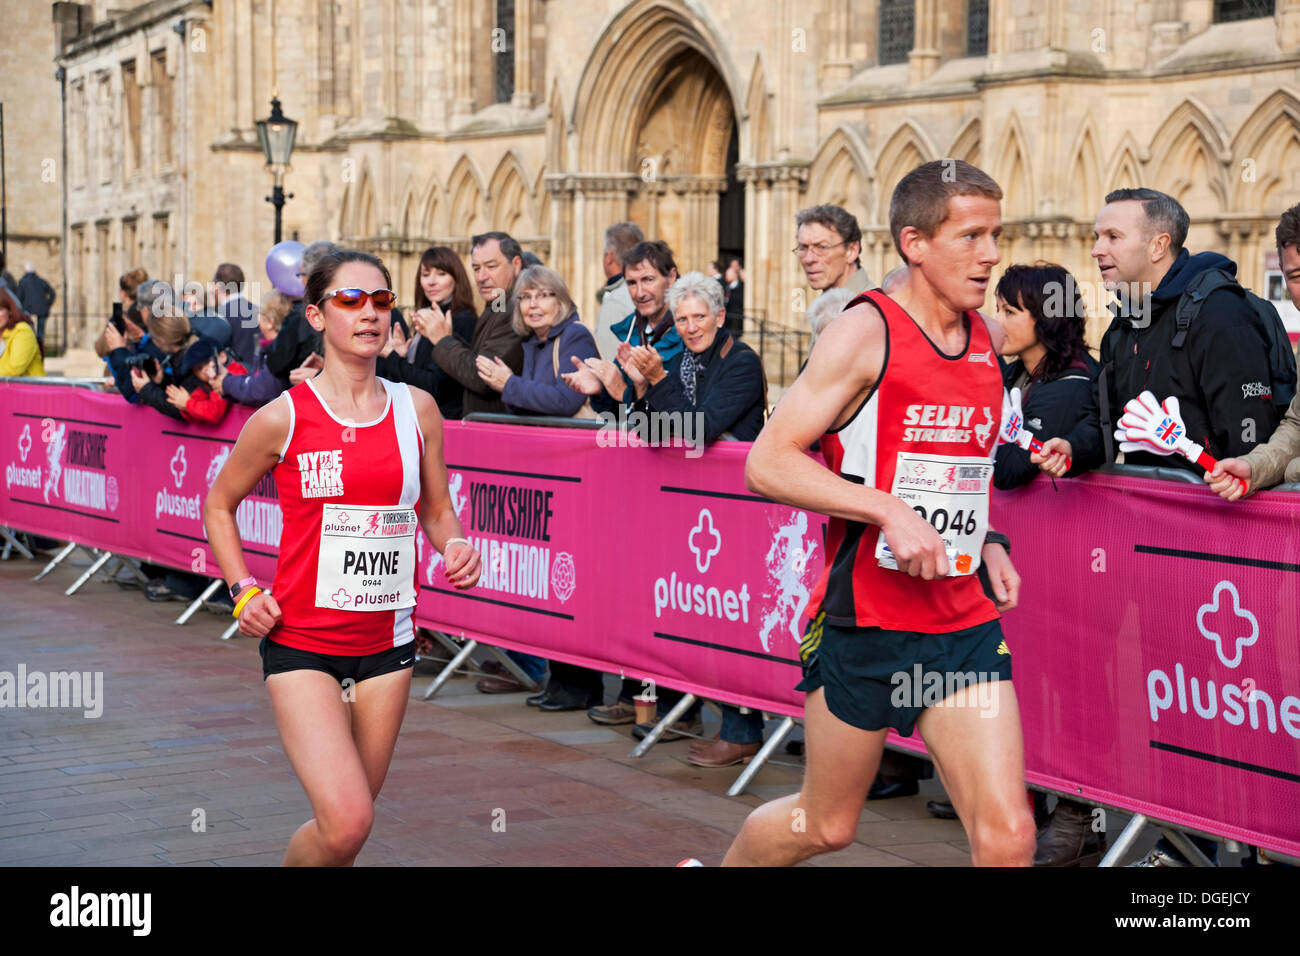 York, UK. 20th Oct, 2013. Spectators applaud athletes as they run past York Minster in the first Plusnet Yorkshire Marathon. More than 6,000 runners took part in the inaugural event. Credit:  PURPLE MARBLES/Alamy Live News - Stock Image